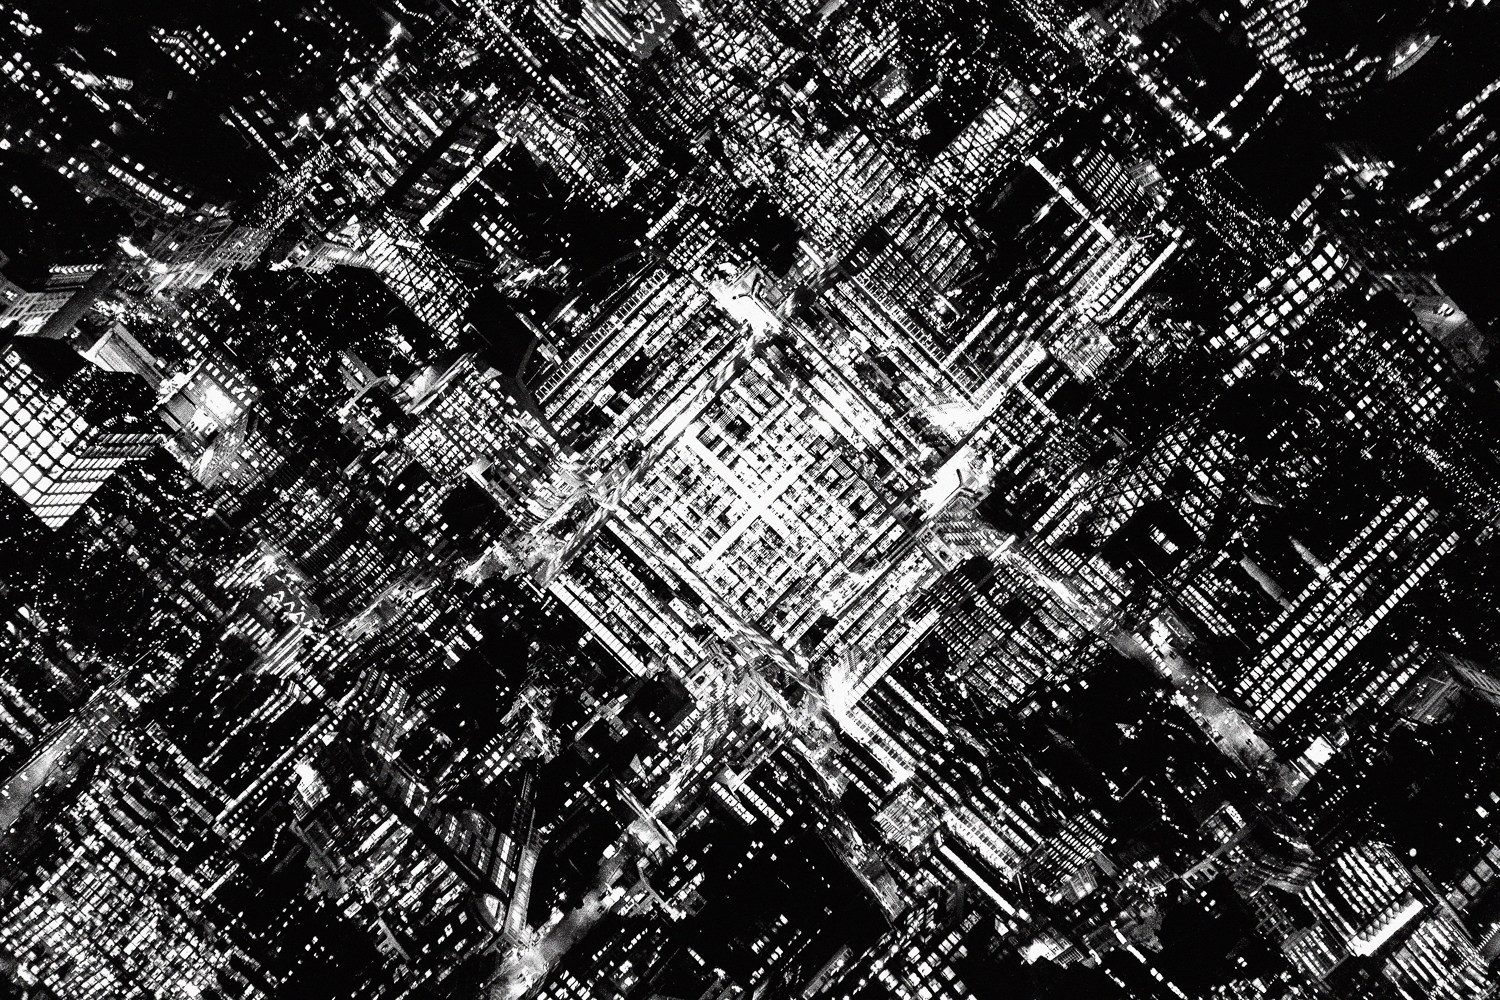 The Physical Fabric of Cities